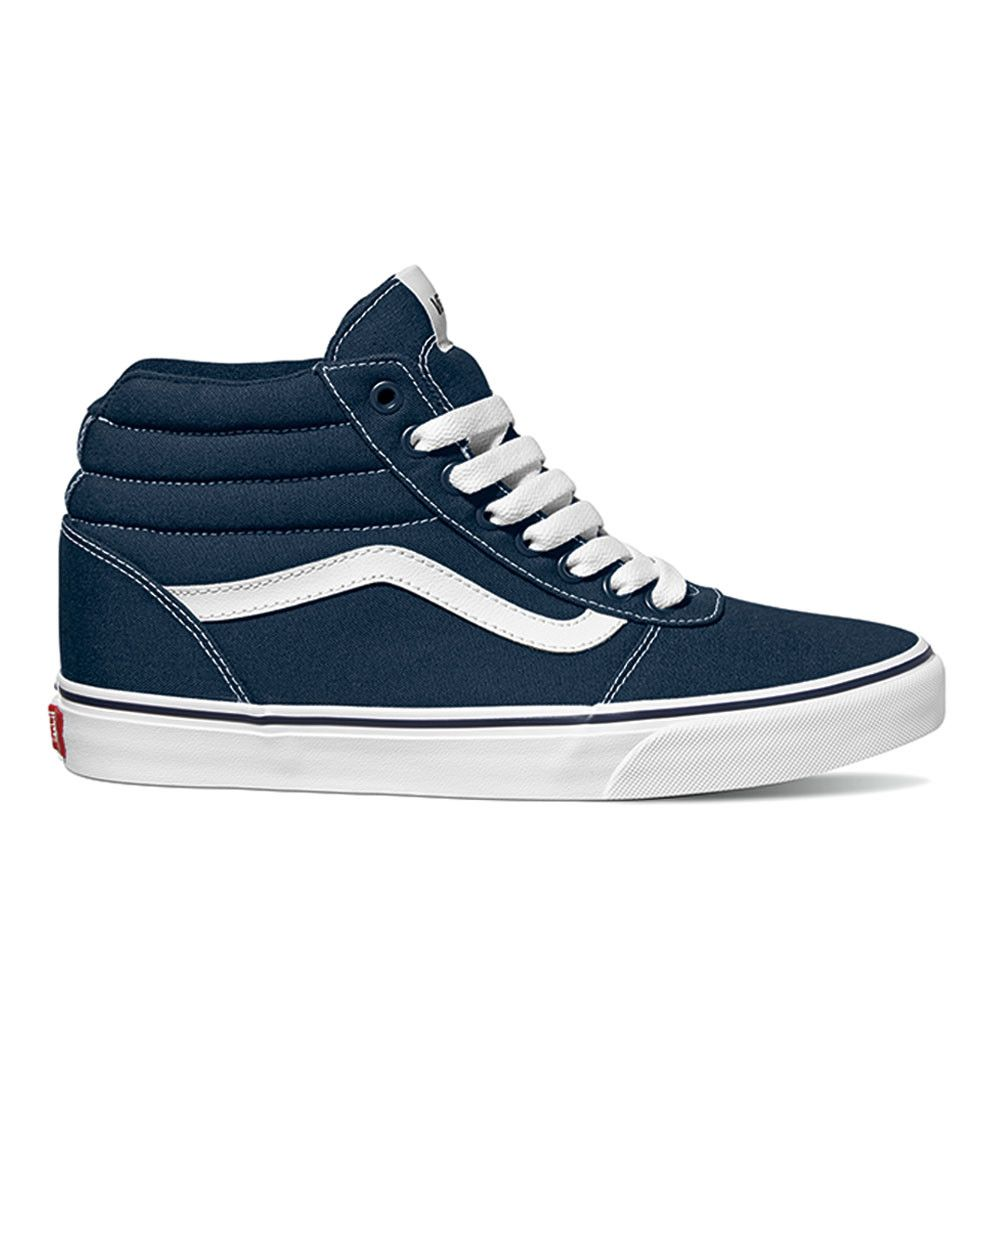 Vans Ward Hi (dress blue white). Available in size 13-15.  size13  size14   size15  bigfeet  bigshoes  bigtrainers  vans  footwear  tall  tallmen   ... ce544f714